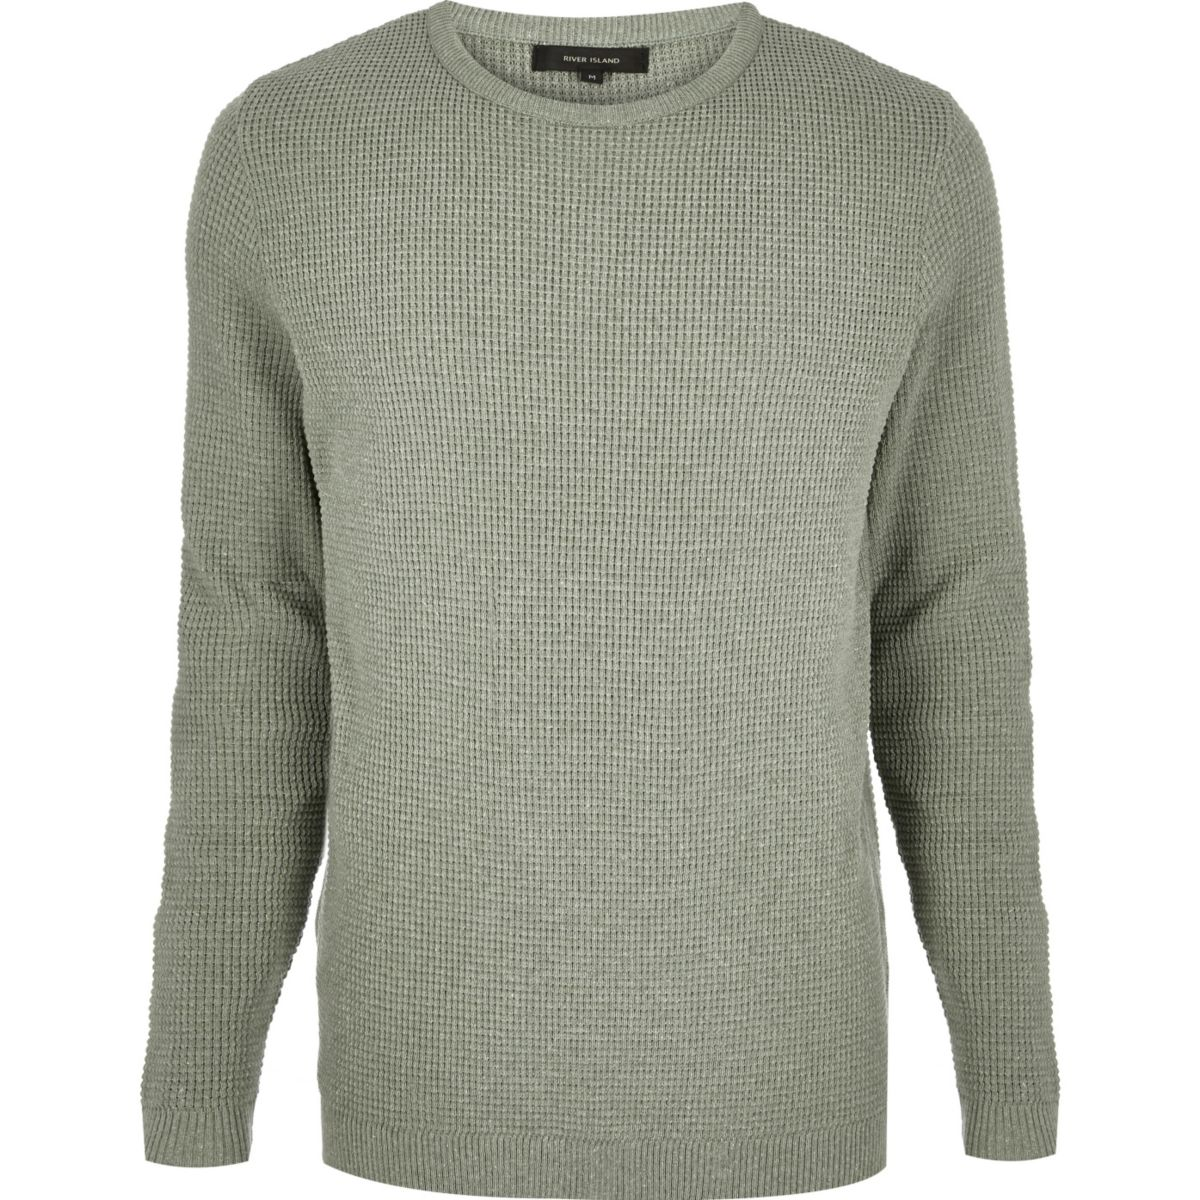 Green textured waffle sweater